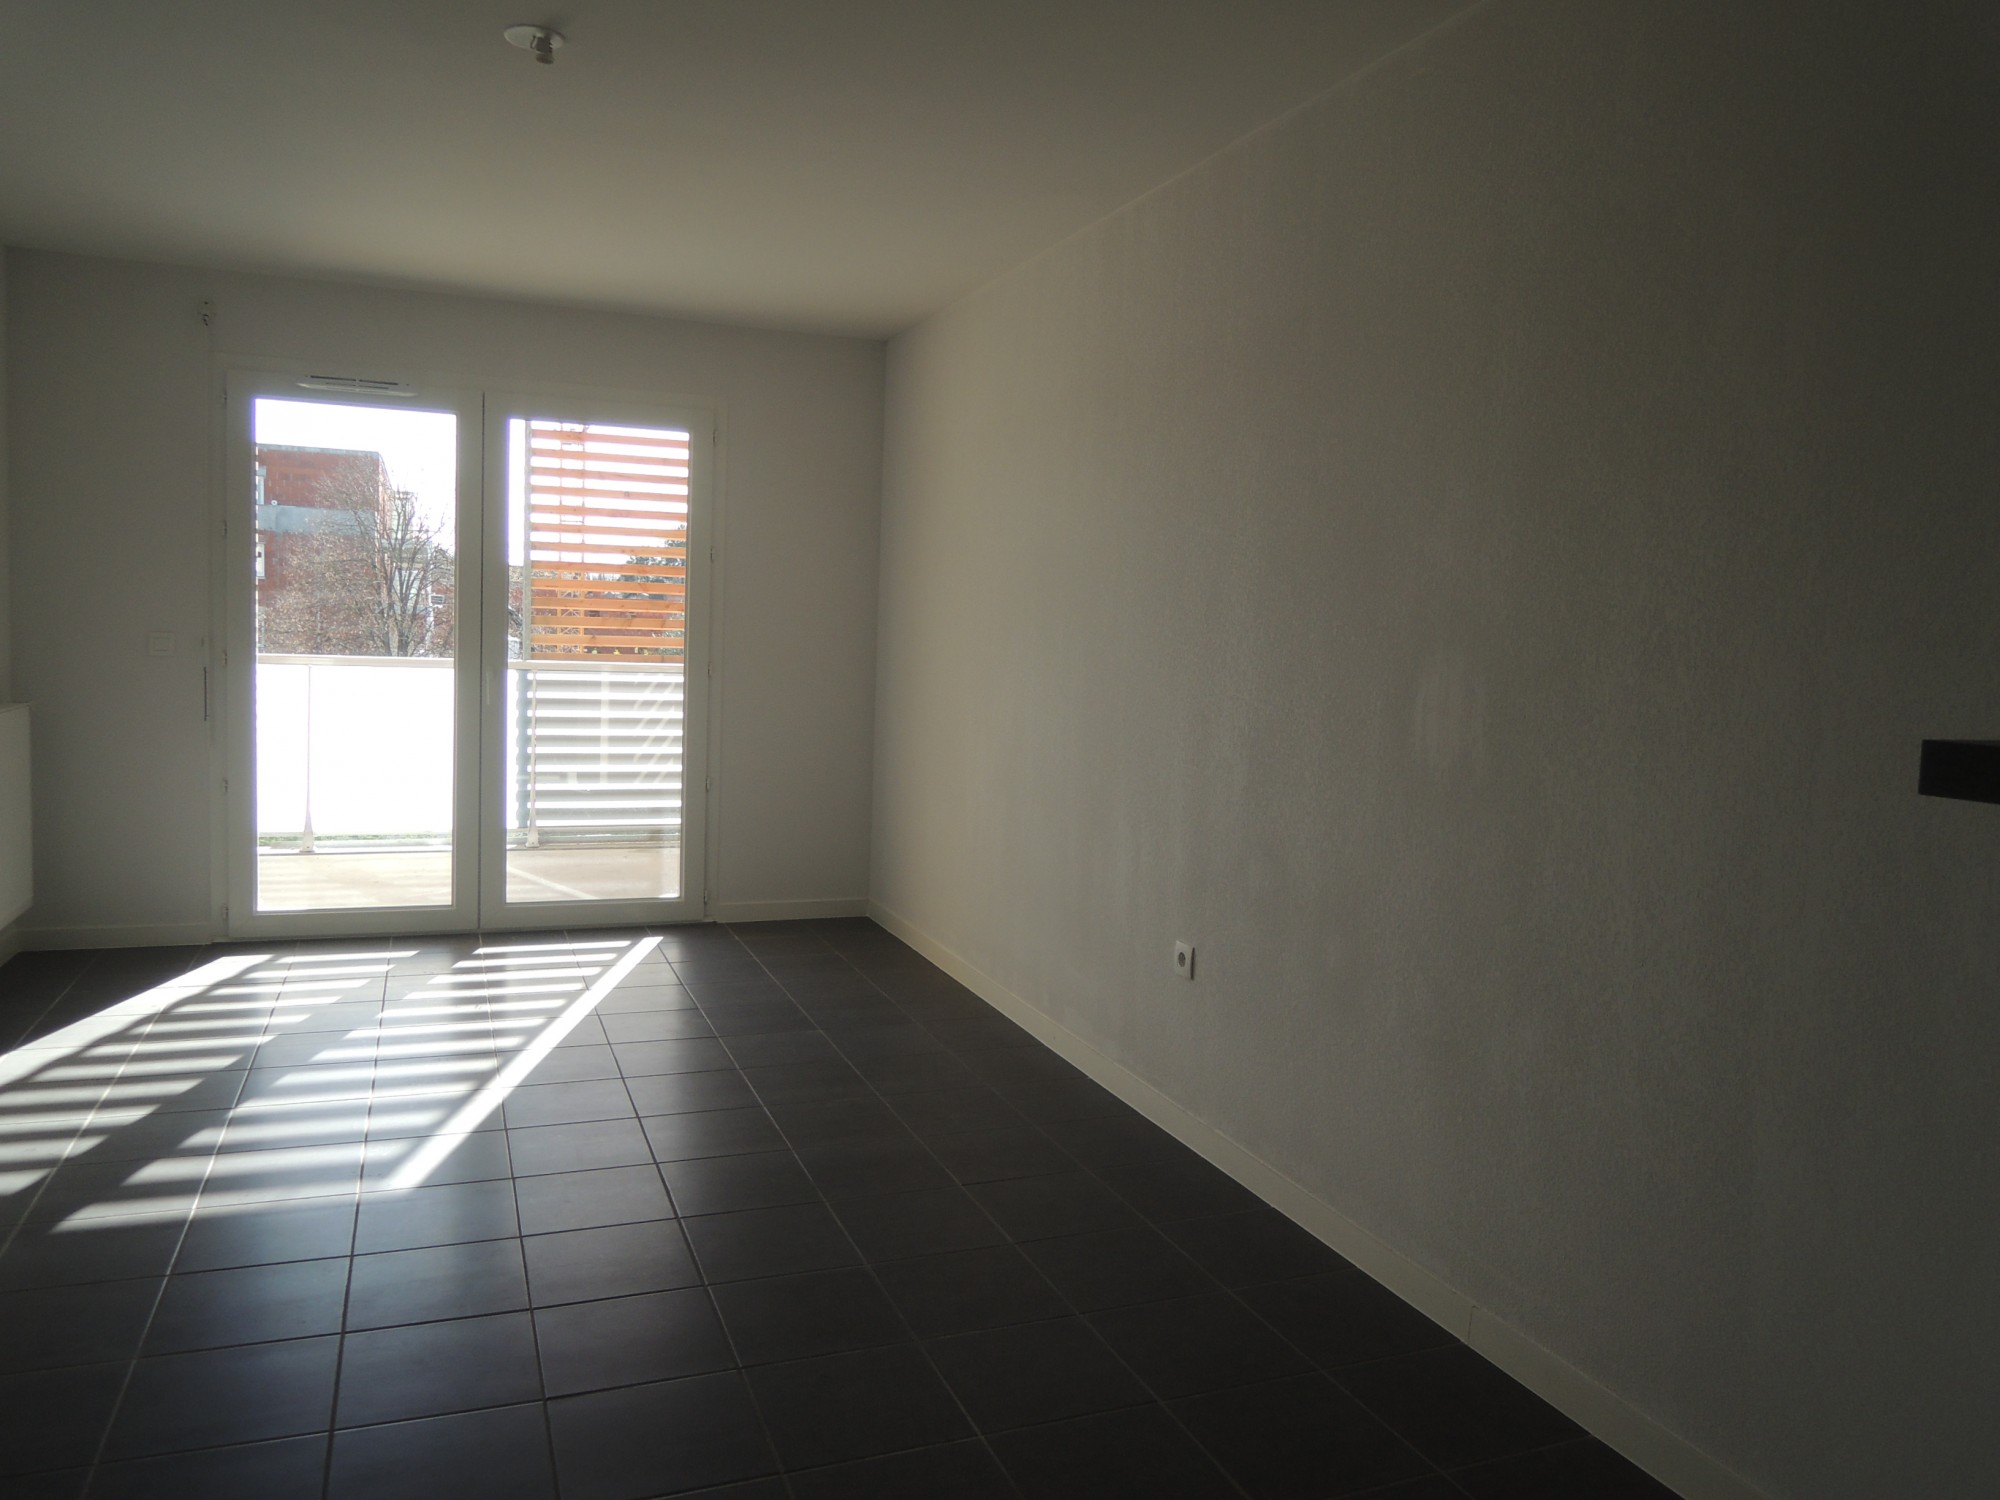 Location Appartement T2 F2 Eysines Montalieu Bru Immobilier